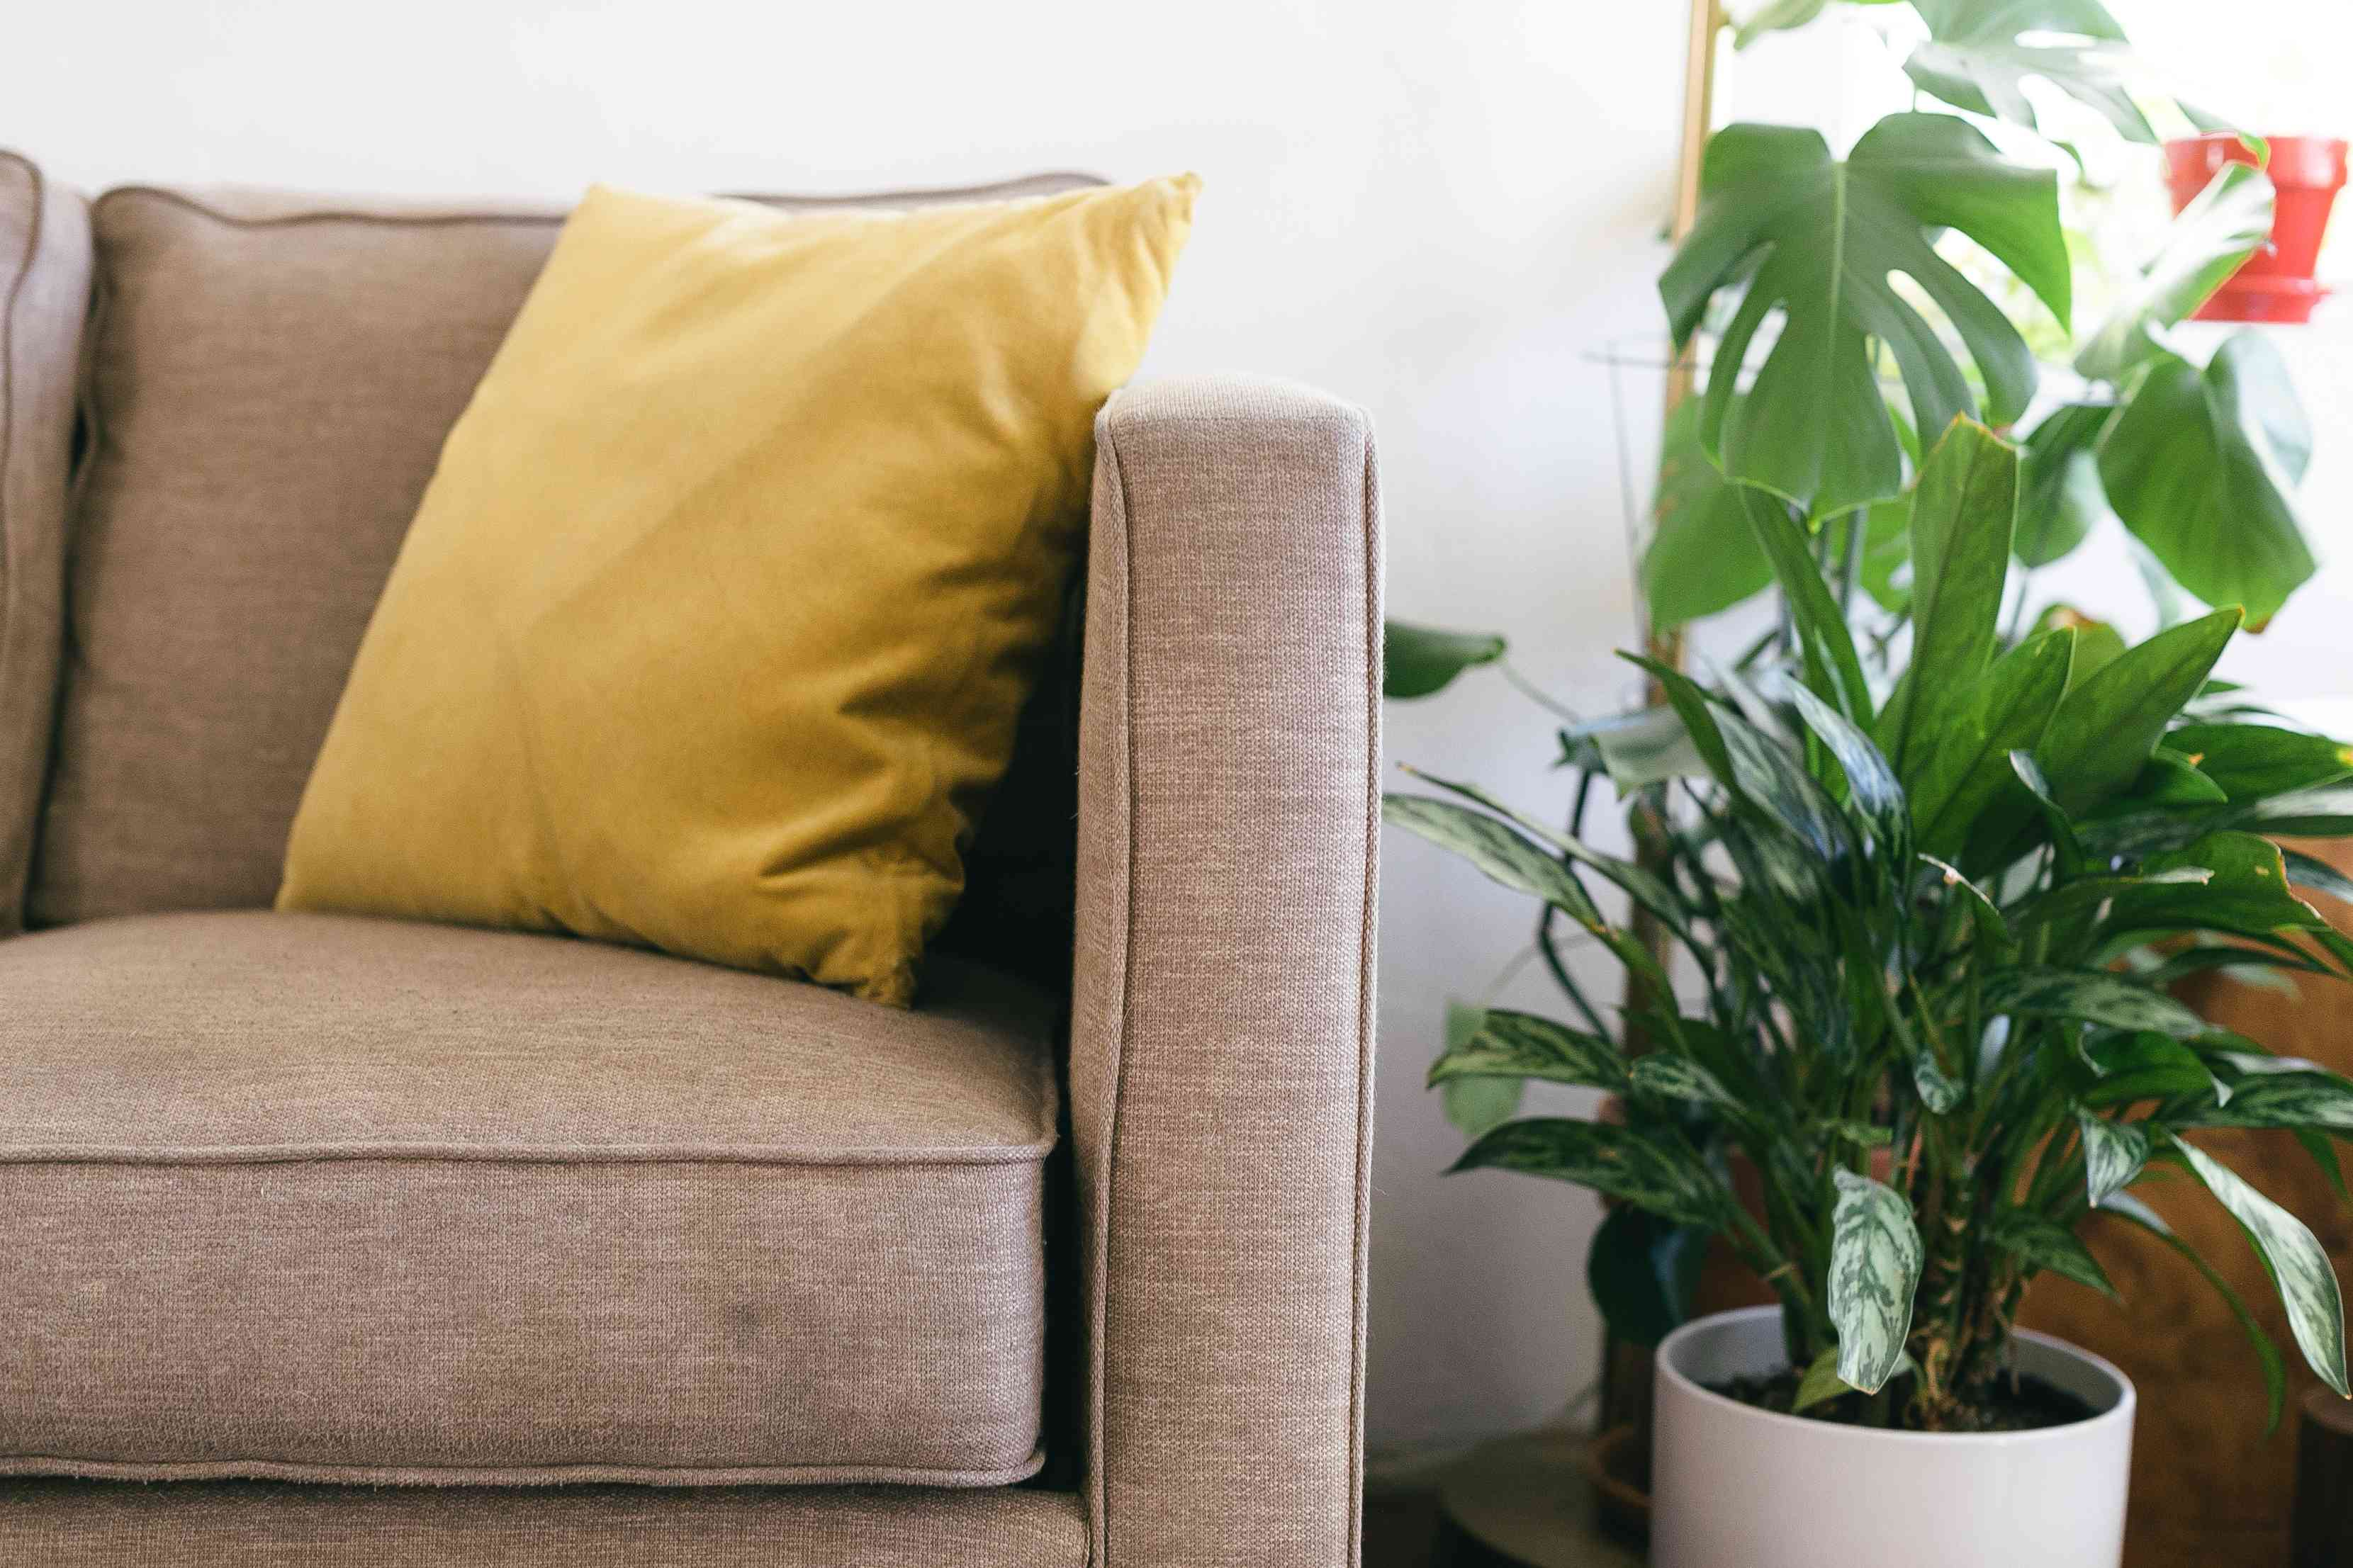 Tan couch corner with yellow cushion and houseplant in white pot closeup